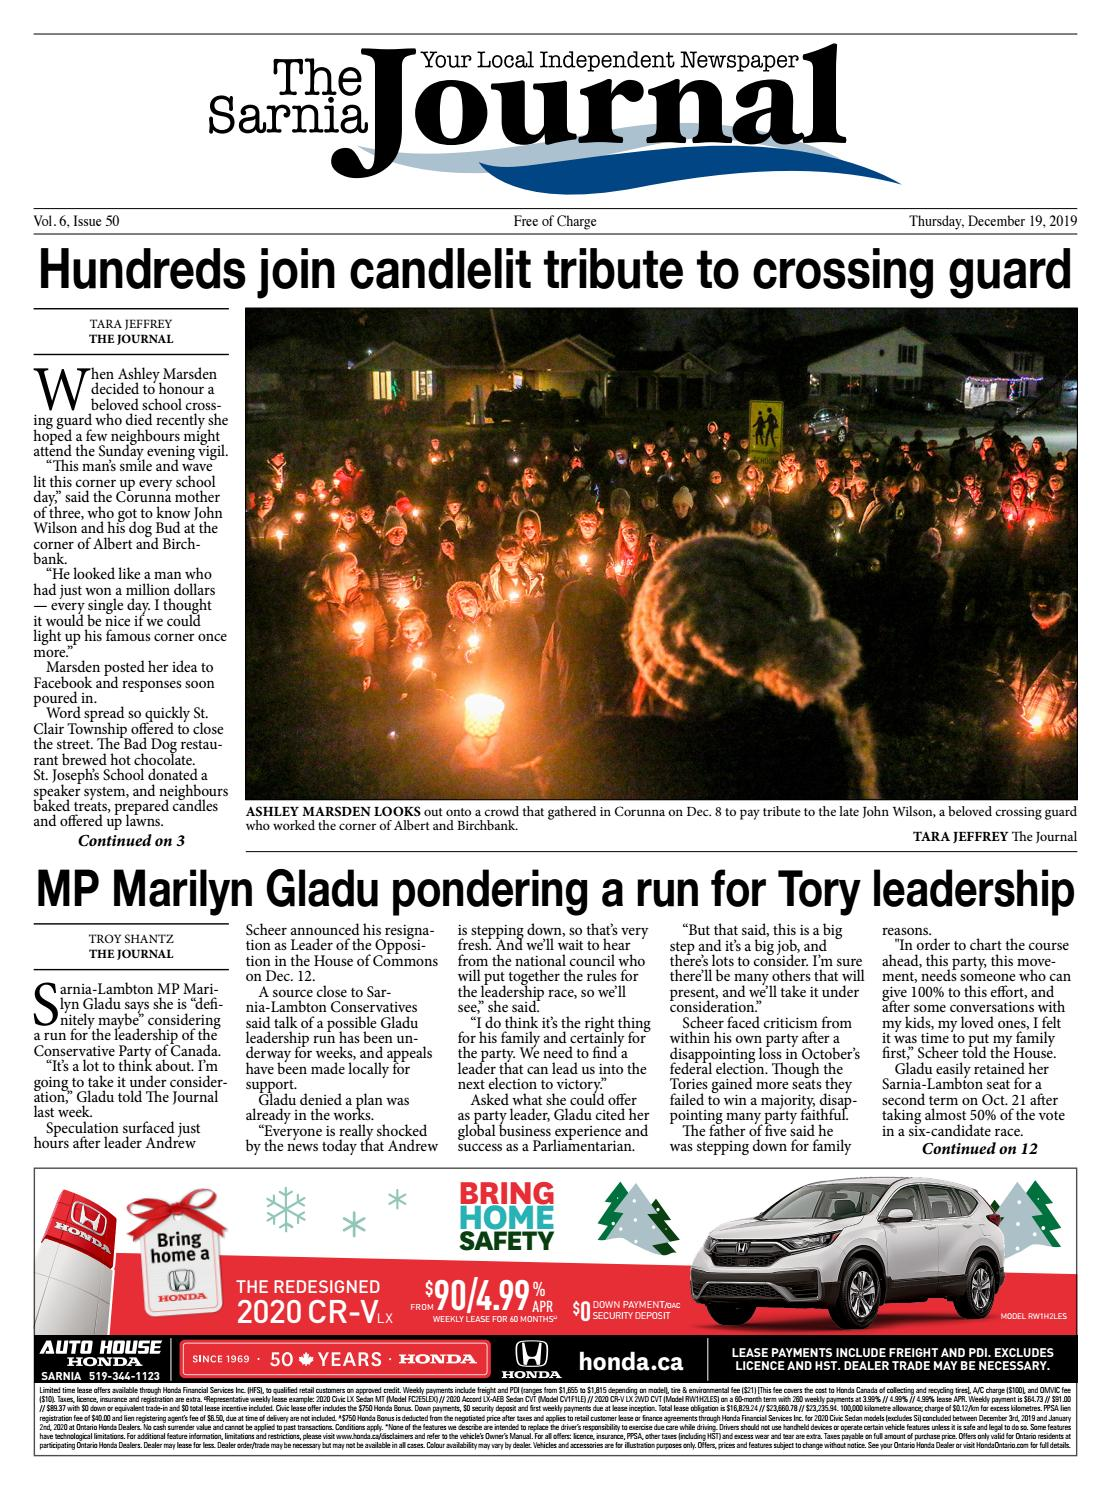 The Sarnia Journal Thursday December 19 2019 By The Sarnia Journal Issuu